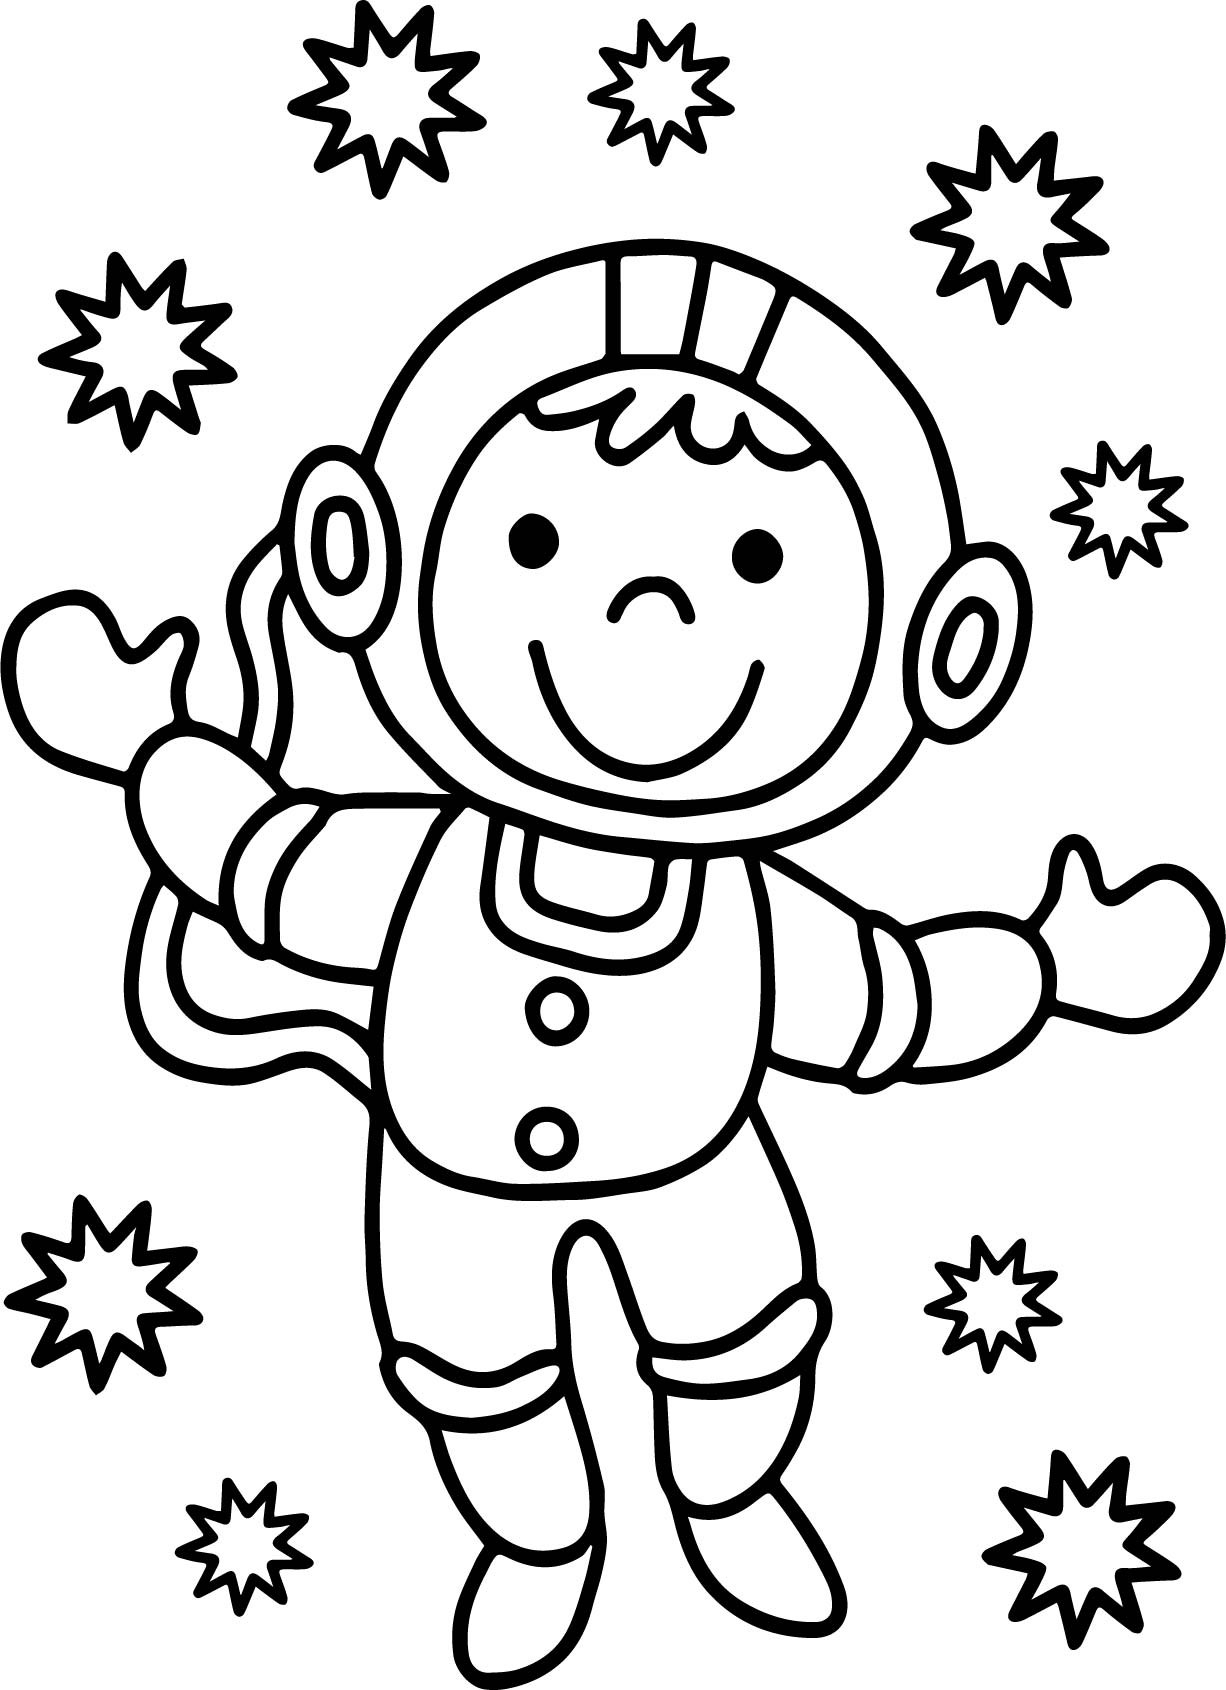 astronaut for coloring printable astronaut coloring pages for kids cool2bkids coloring astronaut for